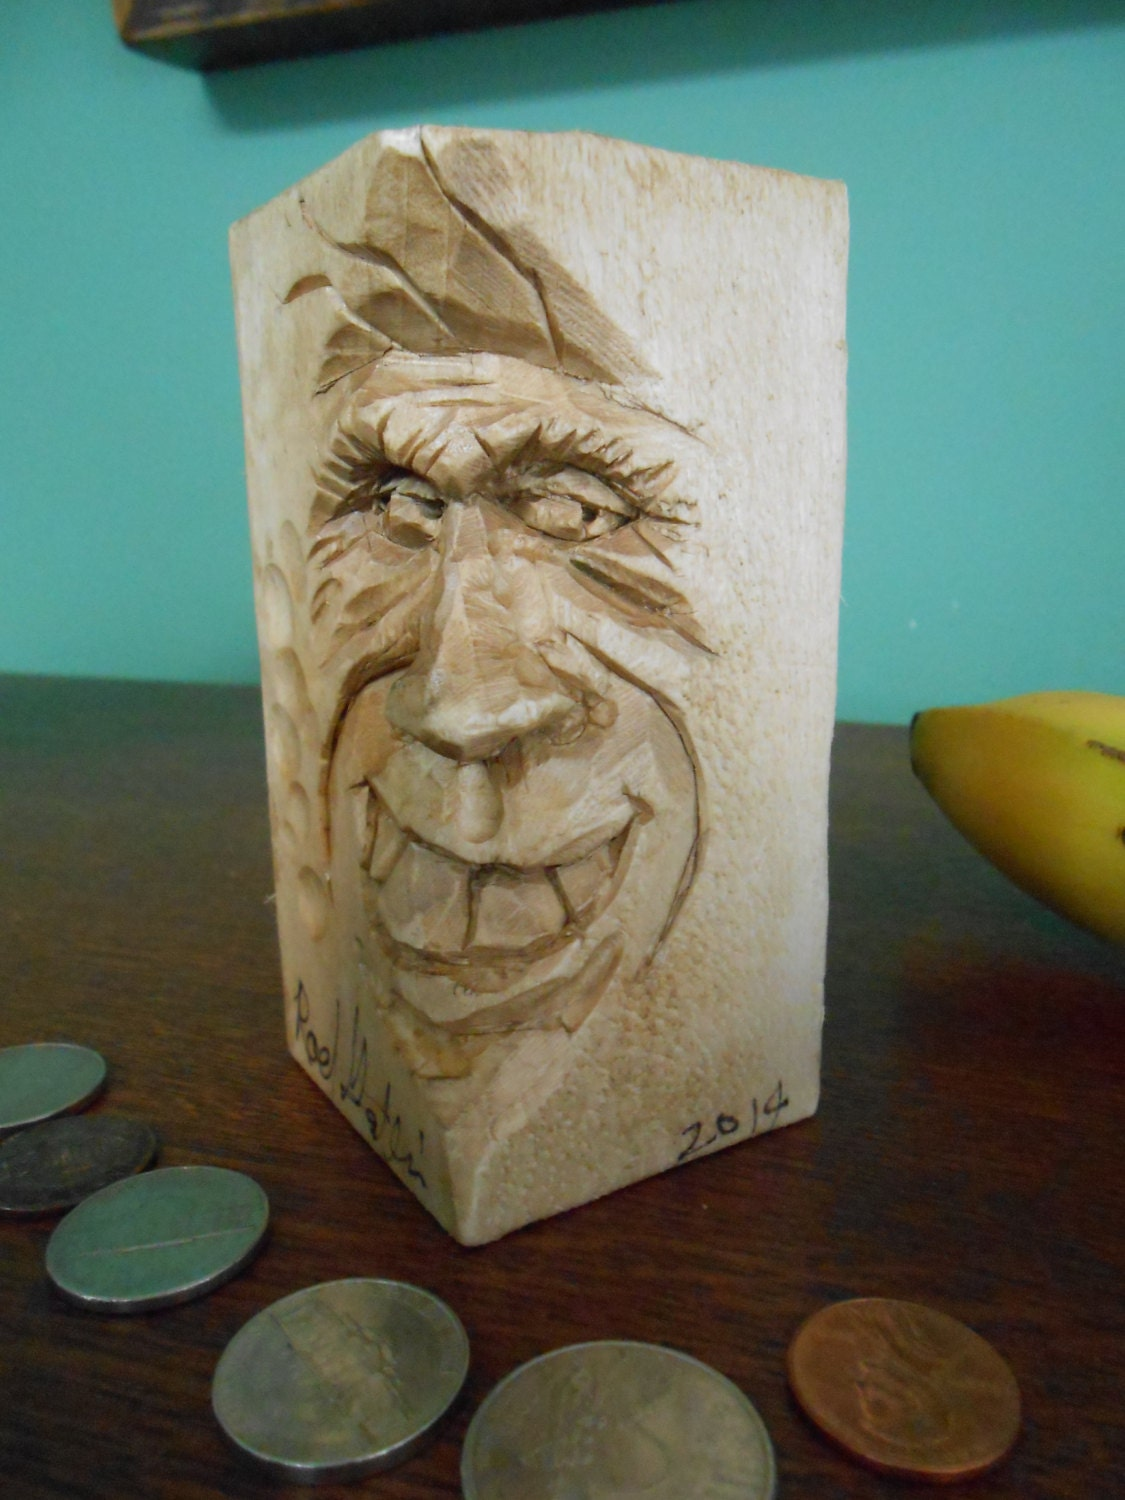 Hand carved wooden caricature face with shifty eyes big teeth